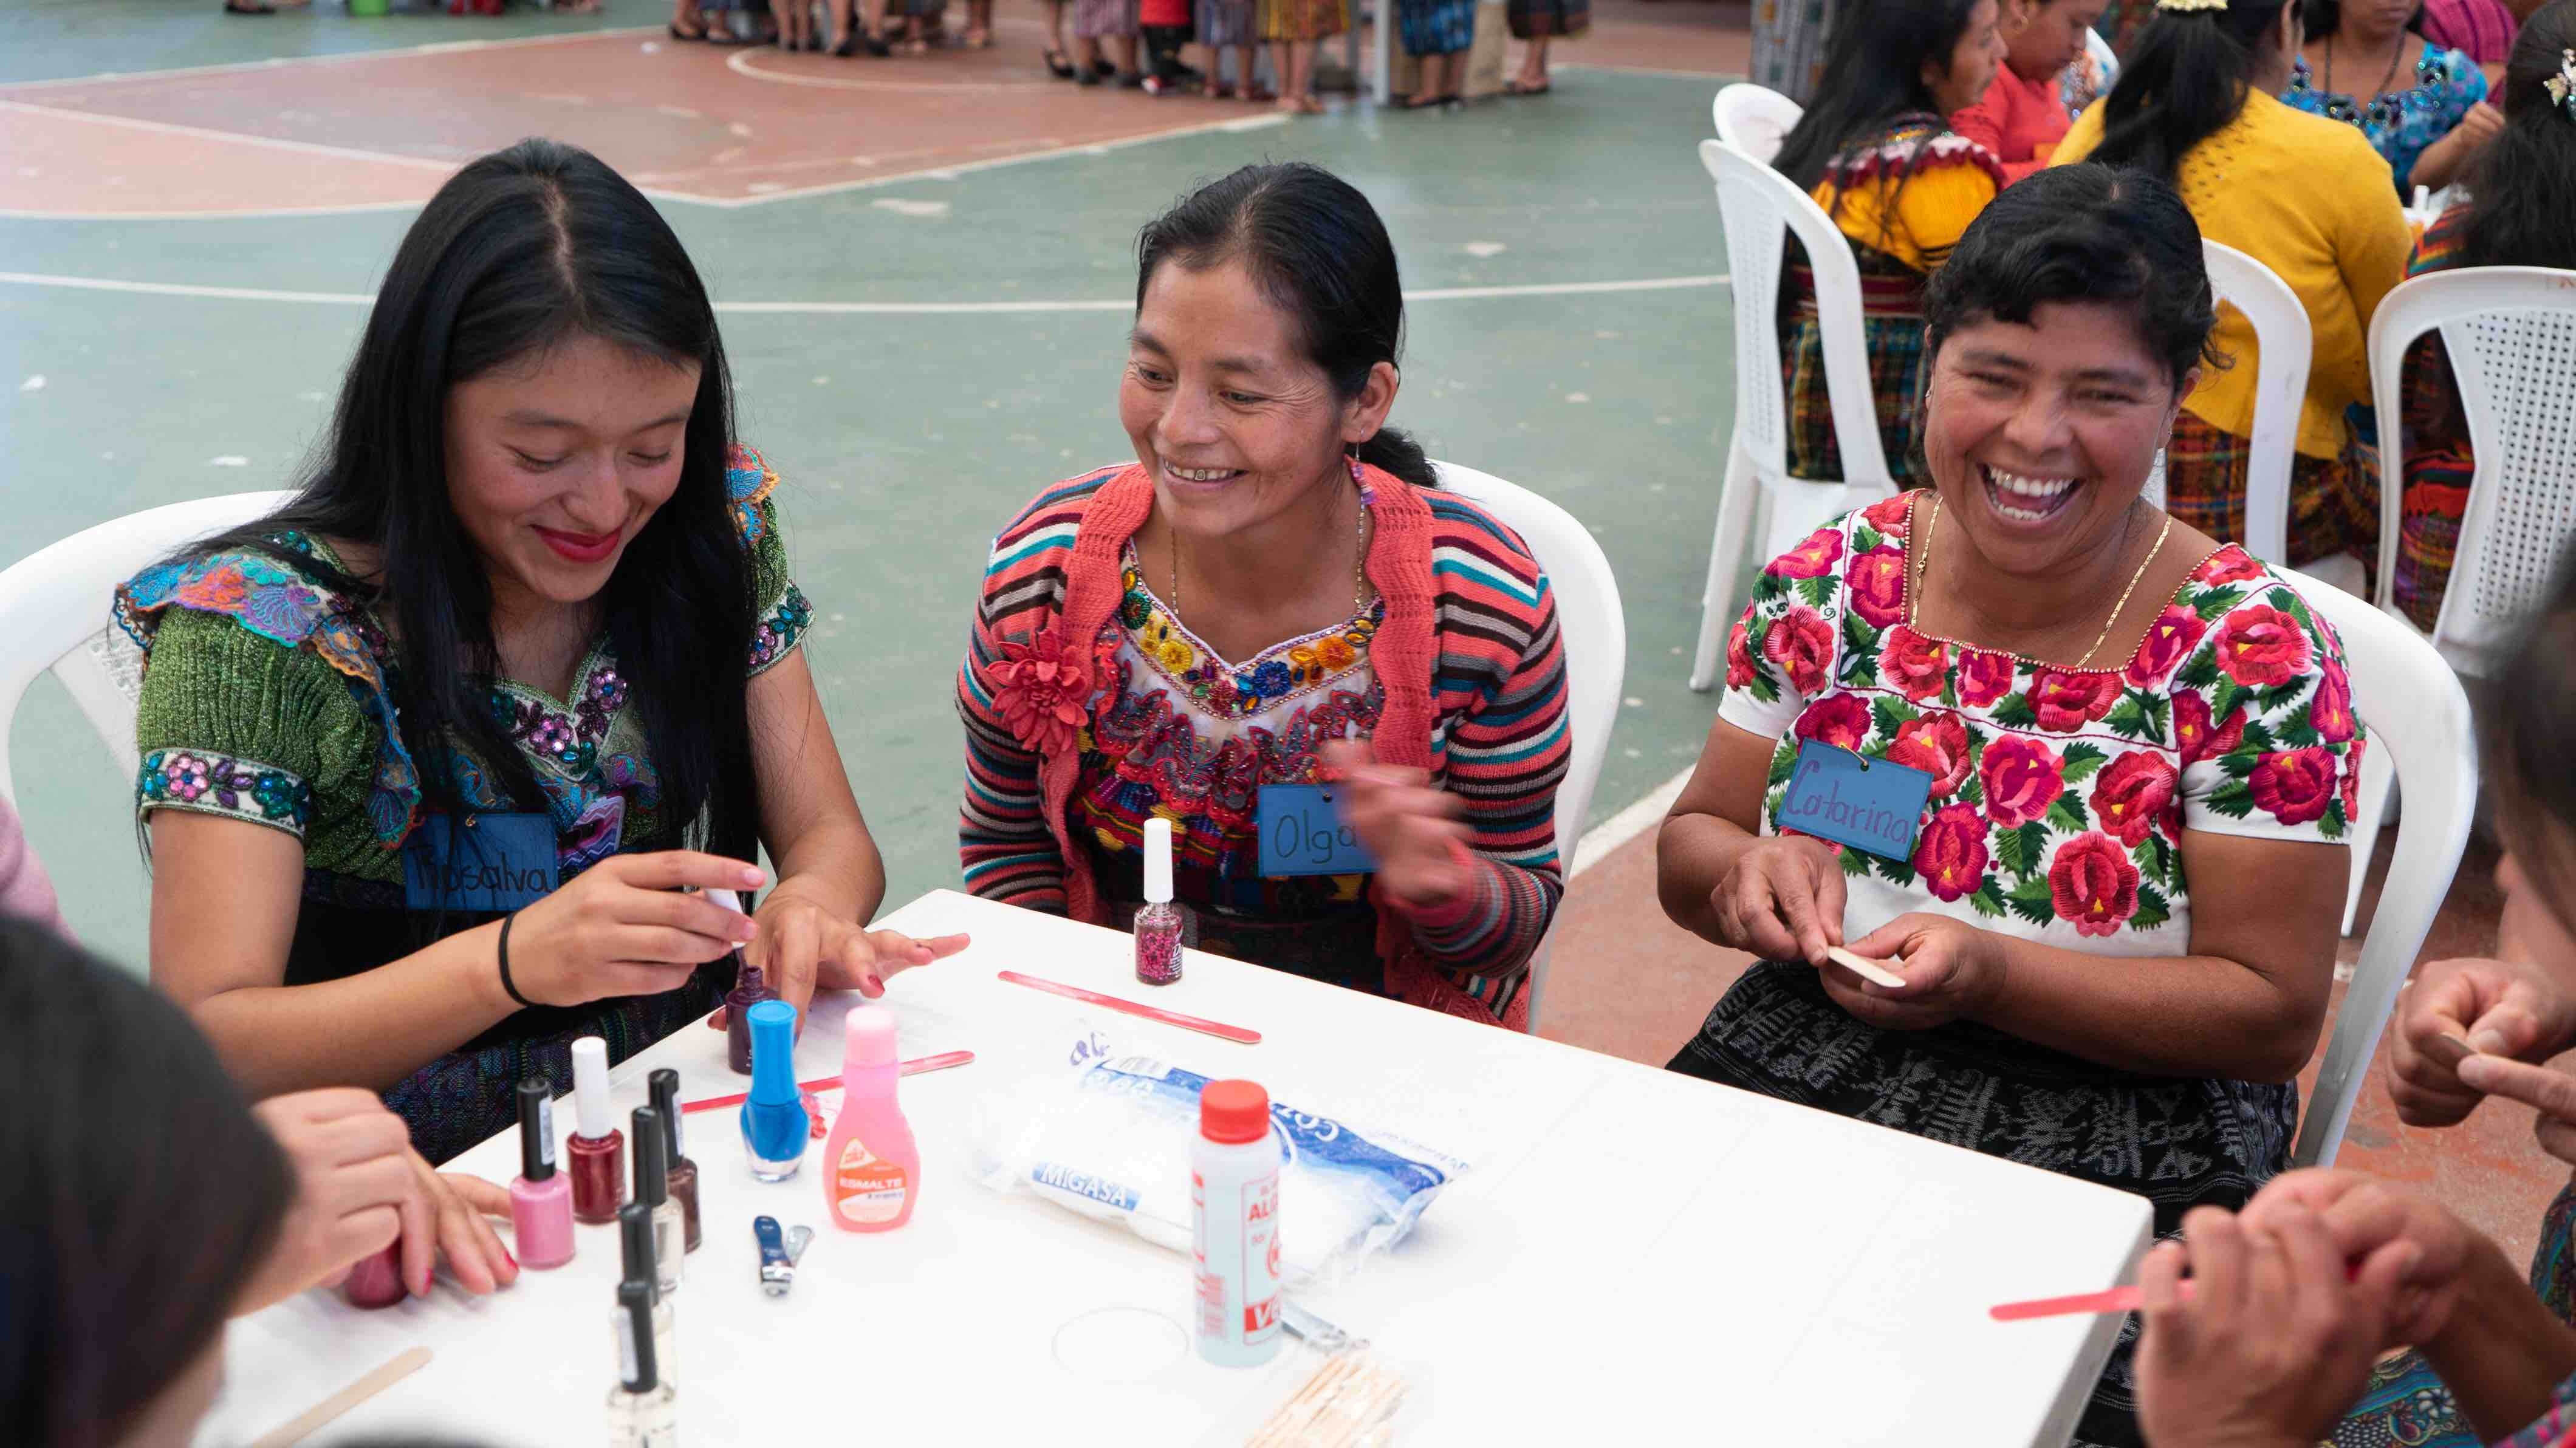 women-painting-nails